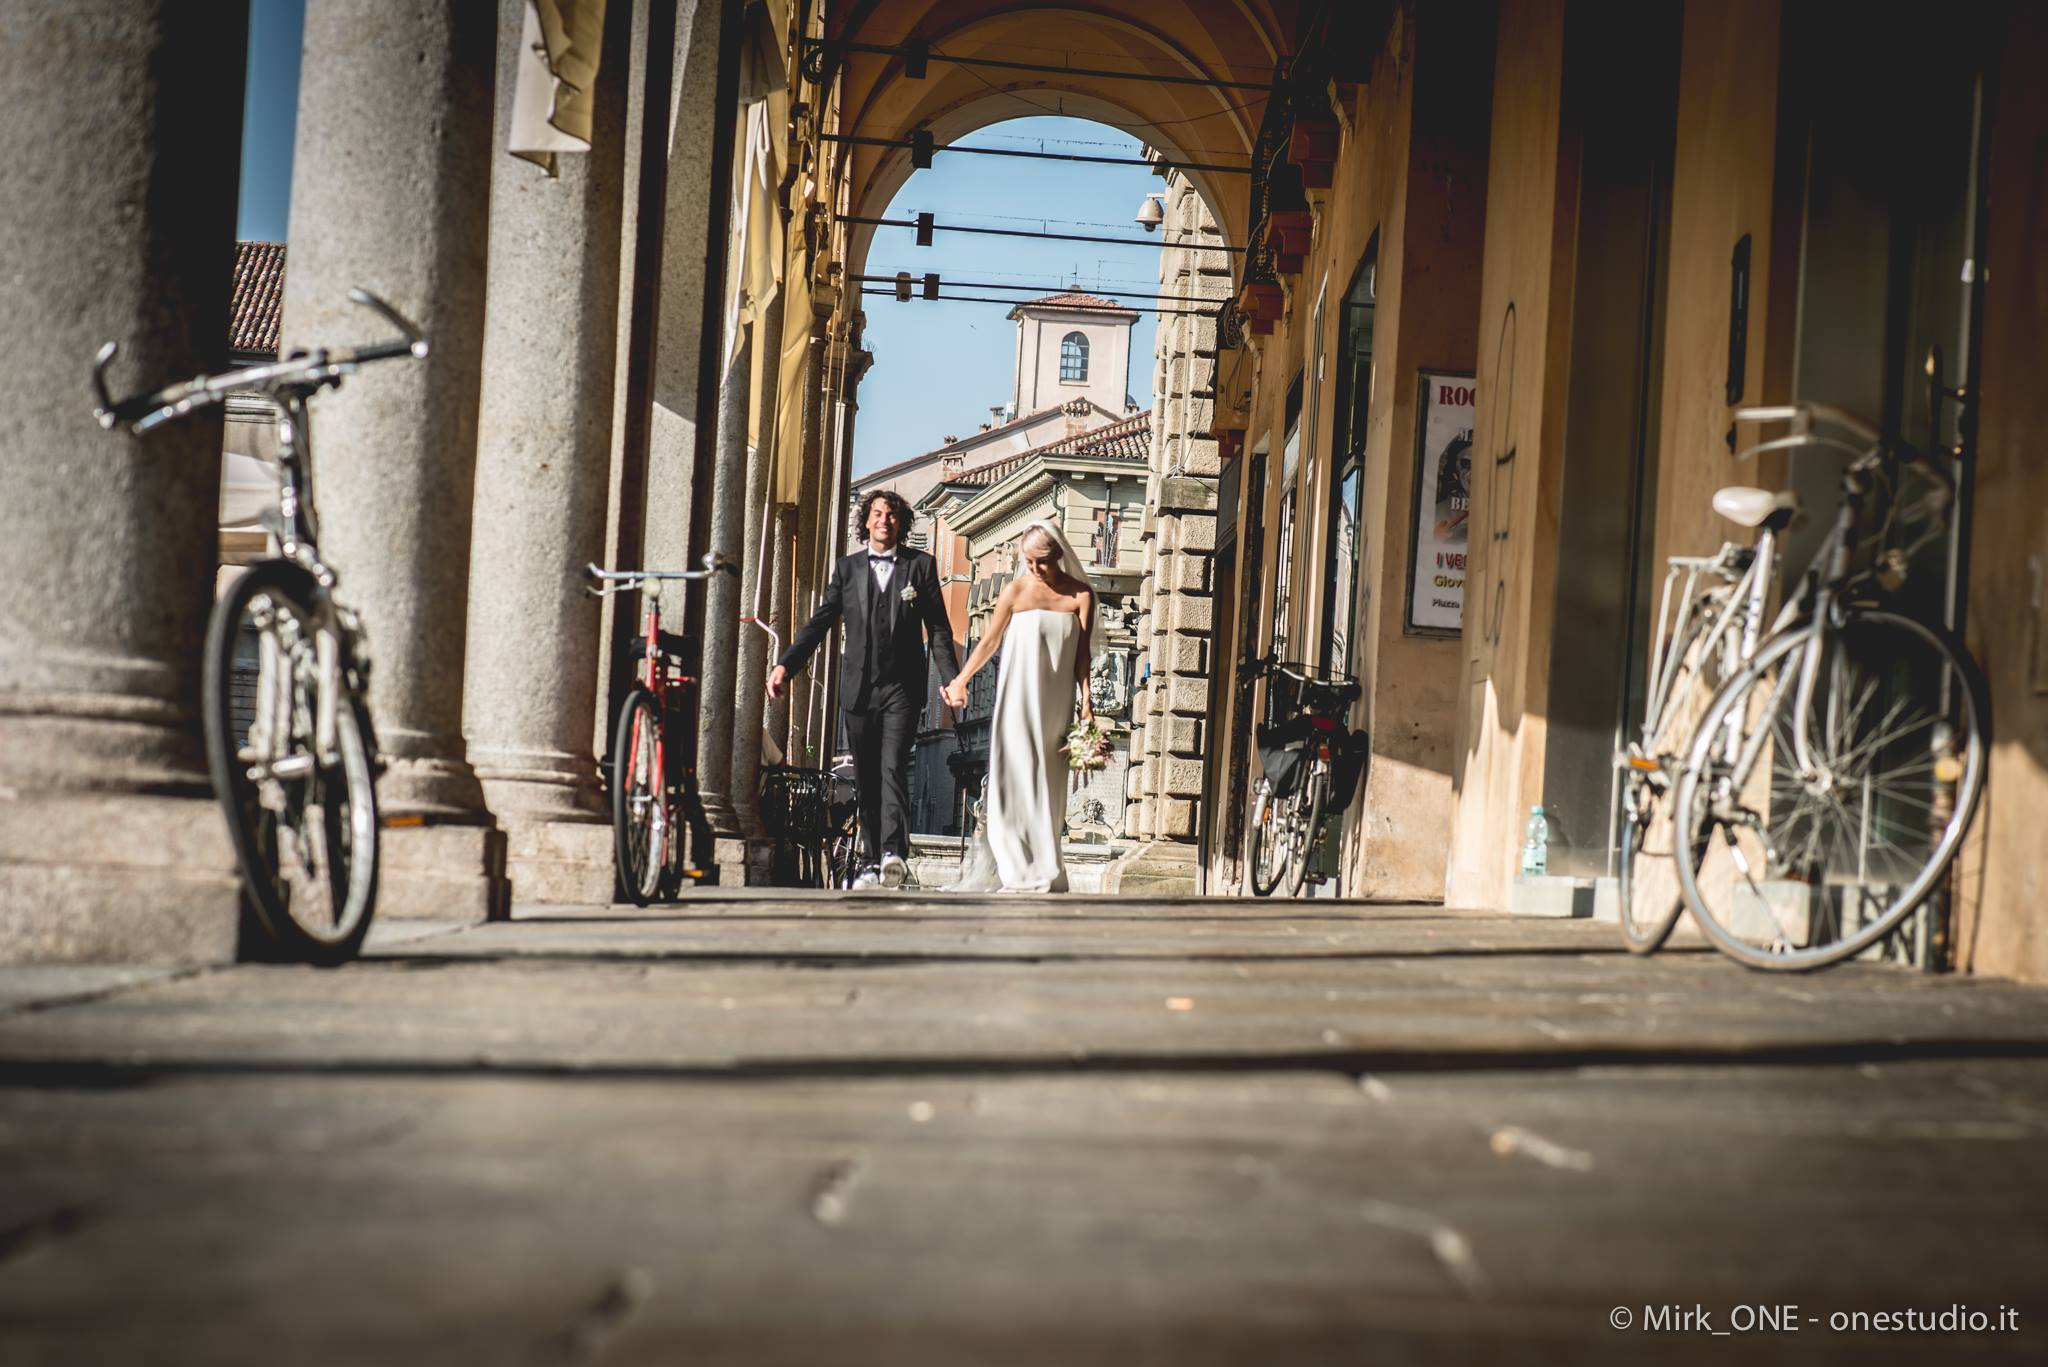 http://lnx.mirkone.it/wp-content/uploads/2015/07/mirk_ONE-fotografo-matrimonio-00826.jpg